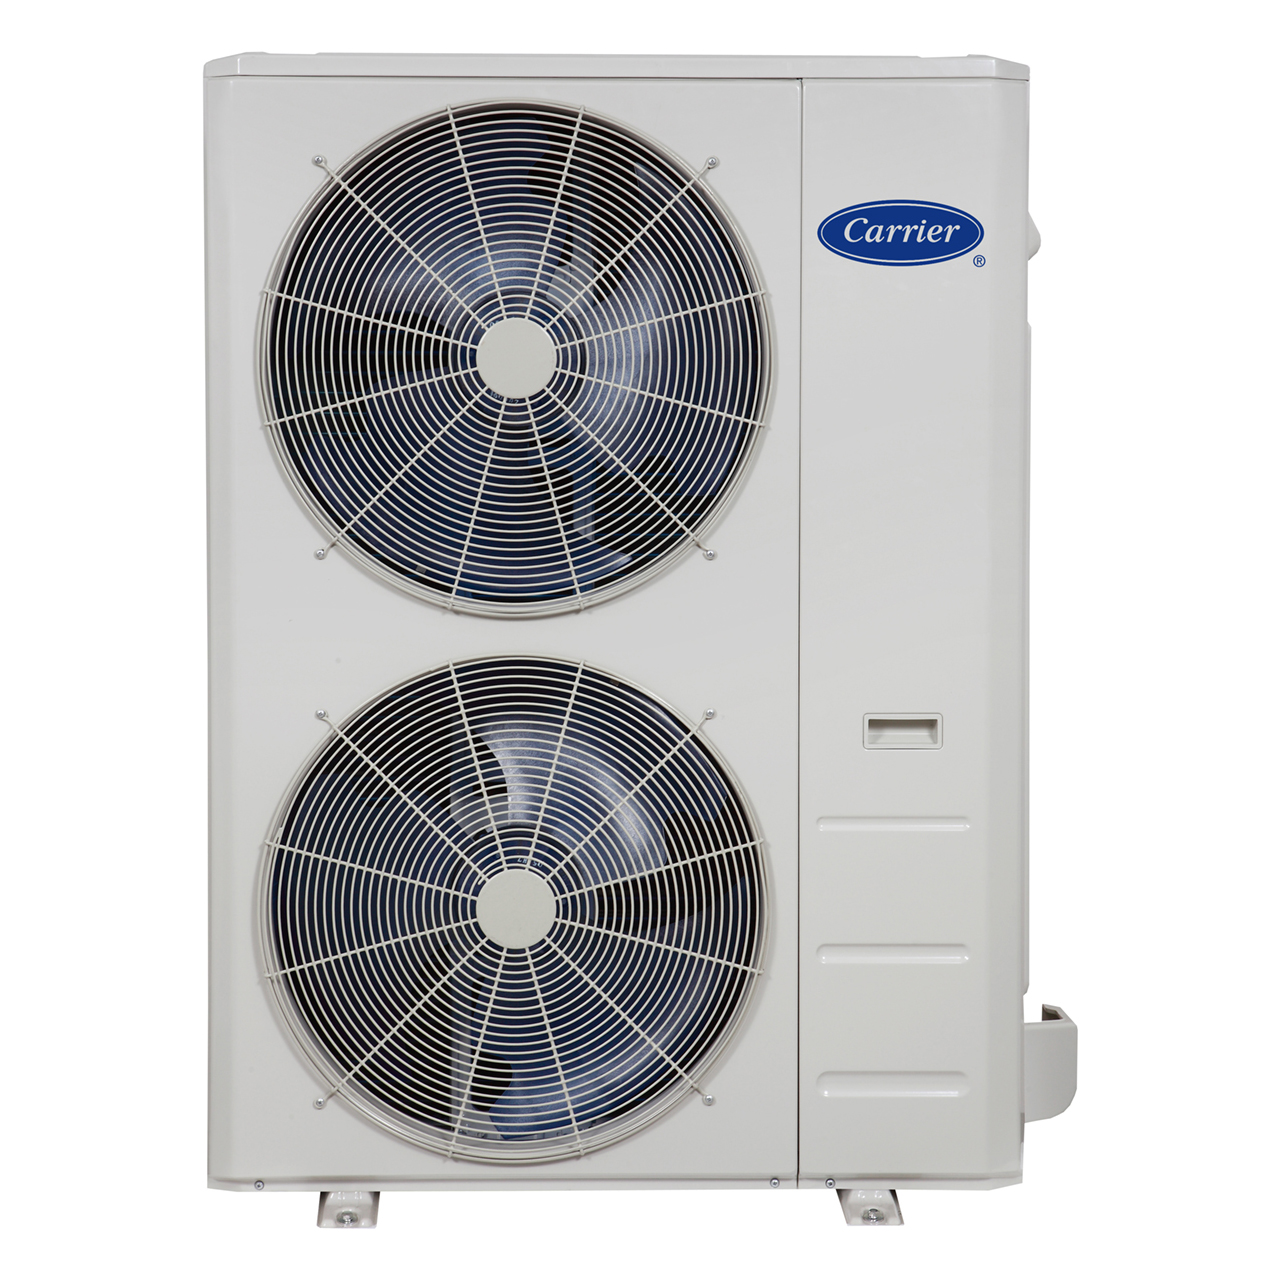 carrier-38mbr-ductless-system-single-zone-heat-pump-b